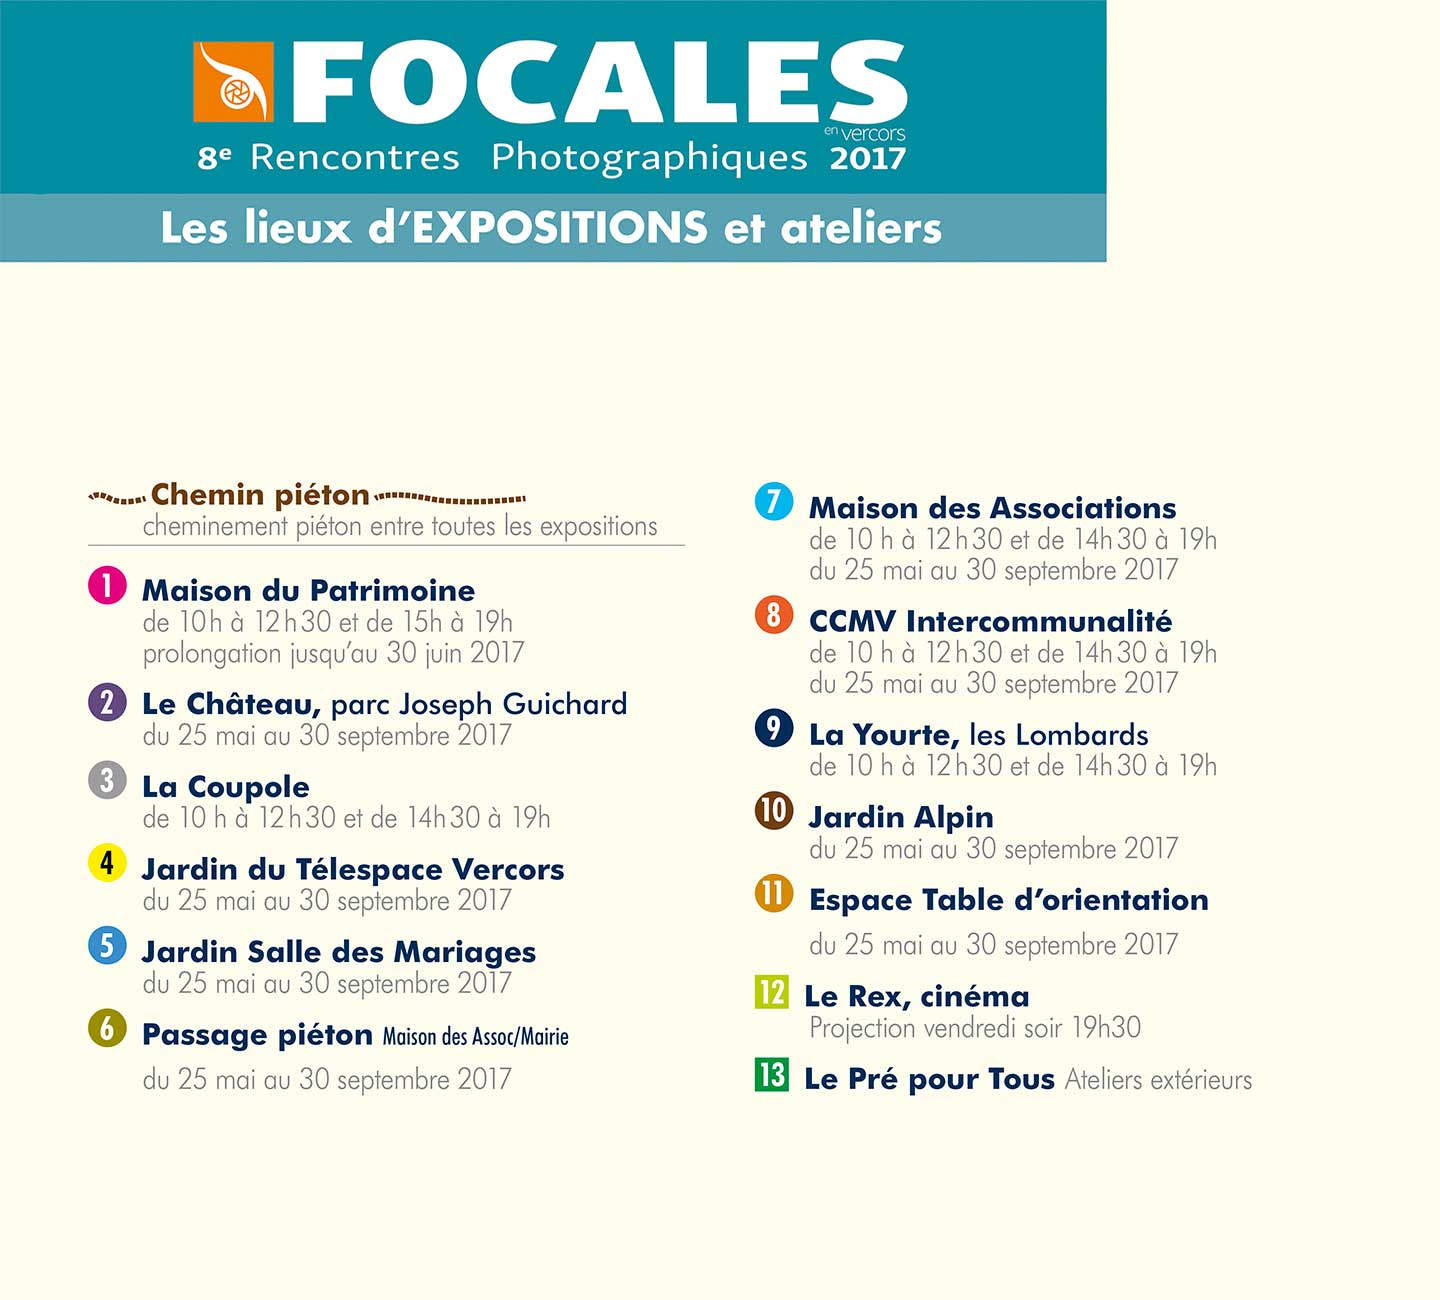 Photo festival focales en vercors practical information layout details